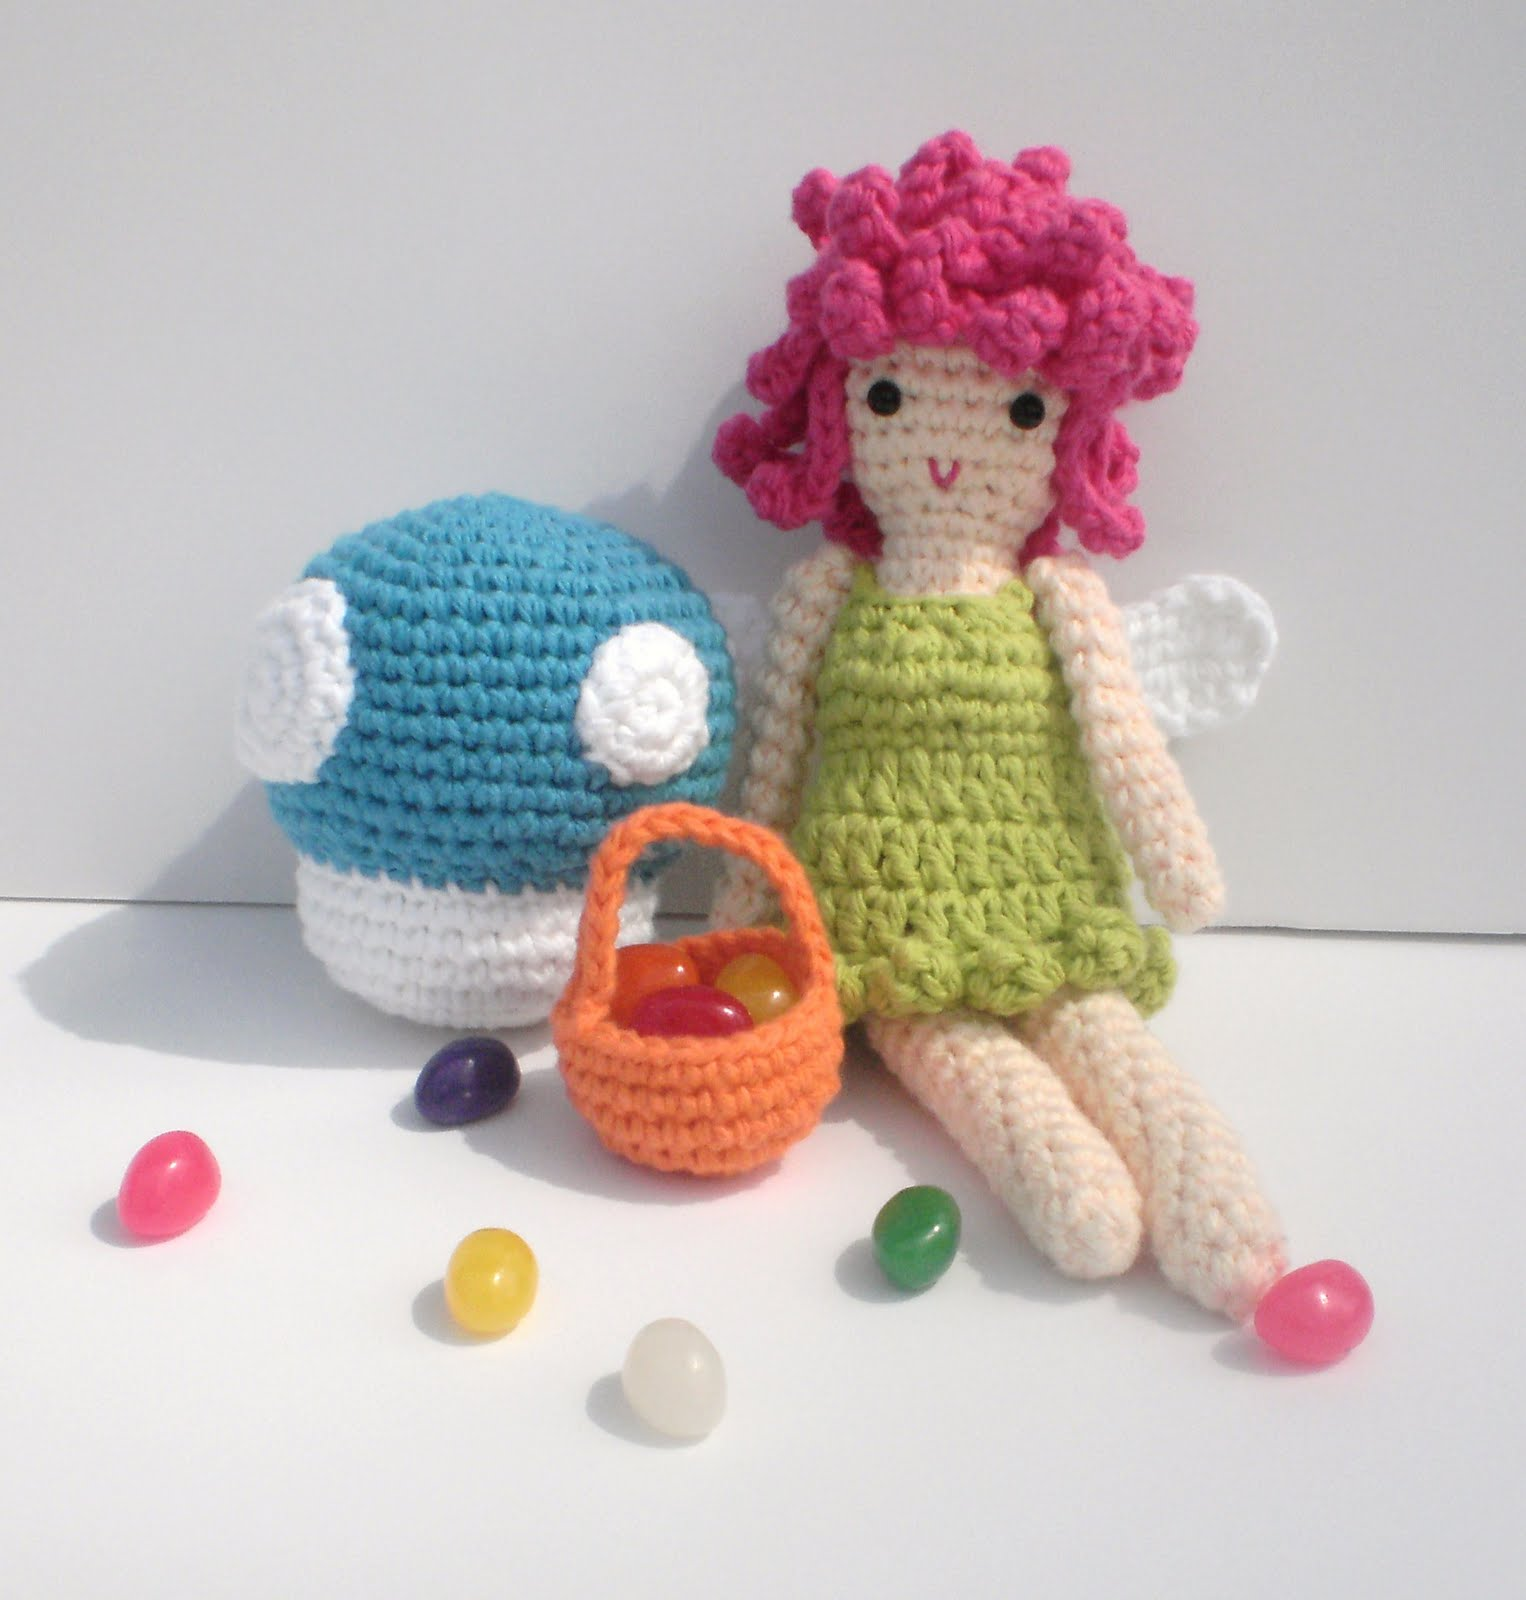 Amigurumi Flower Pattern Free : The Blue Crab Stitches At Midnight: Flower Fairy ...